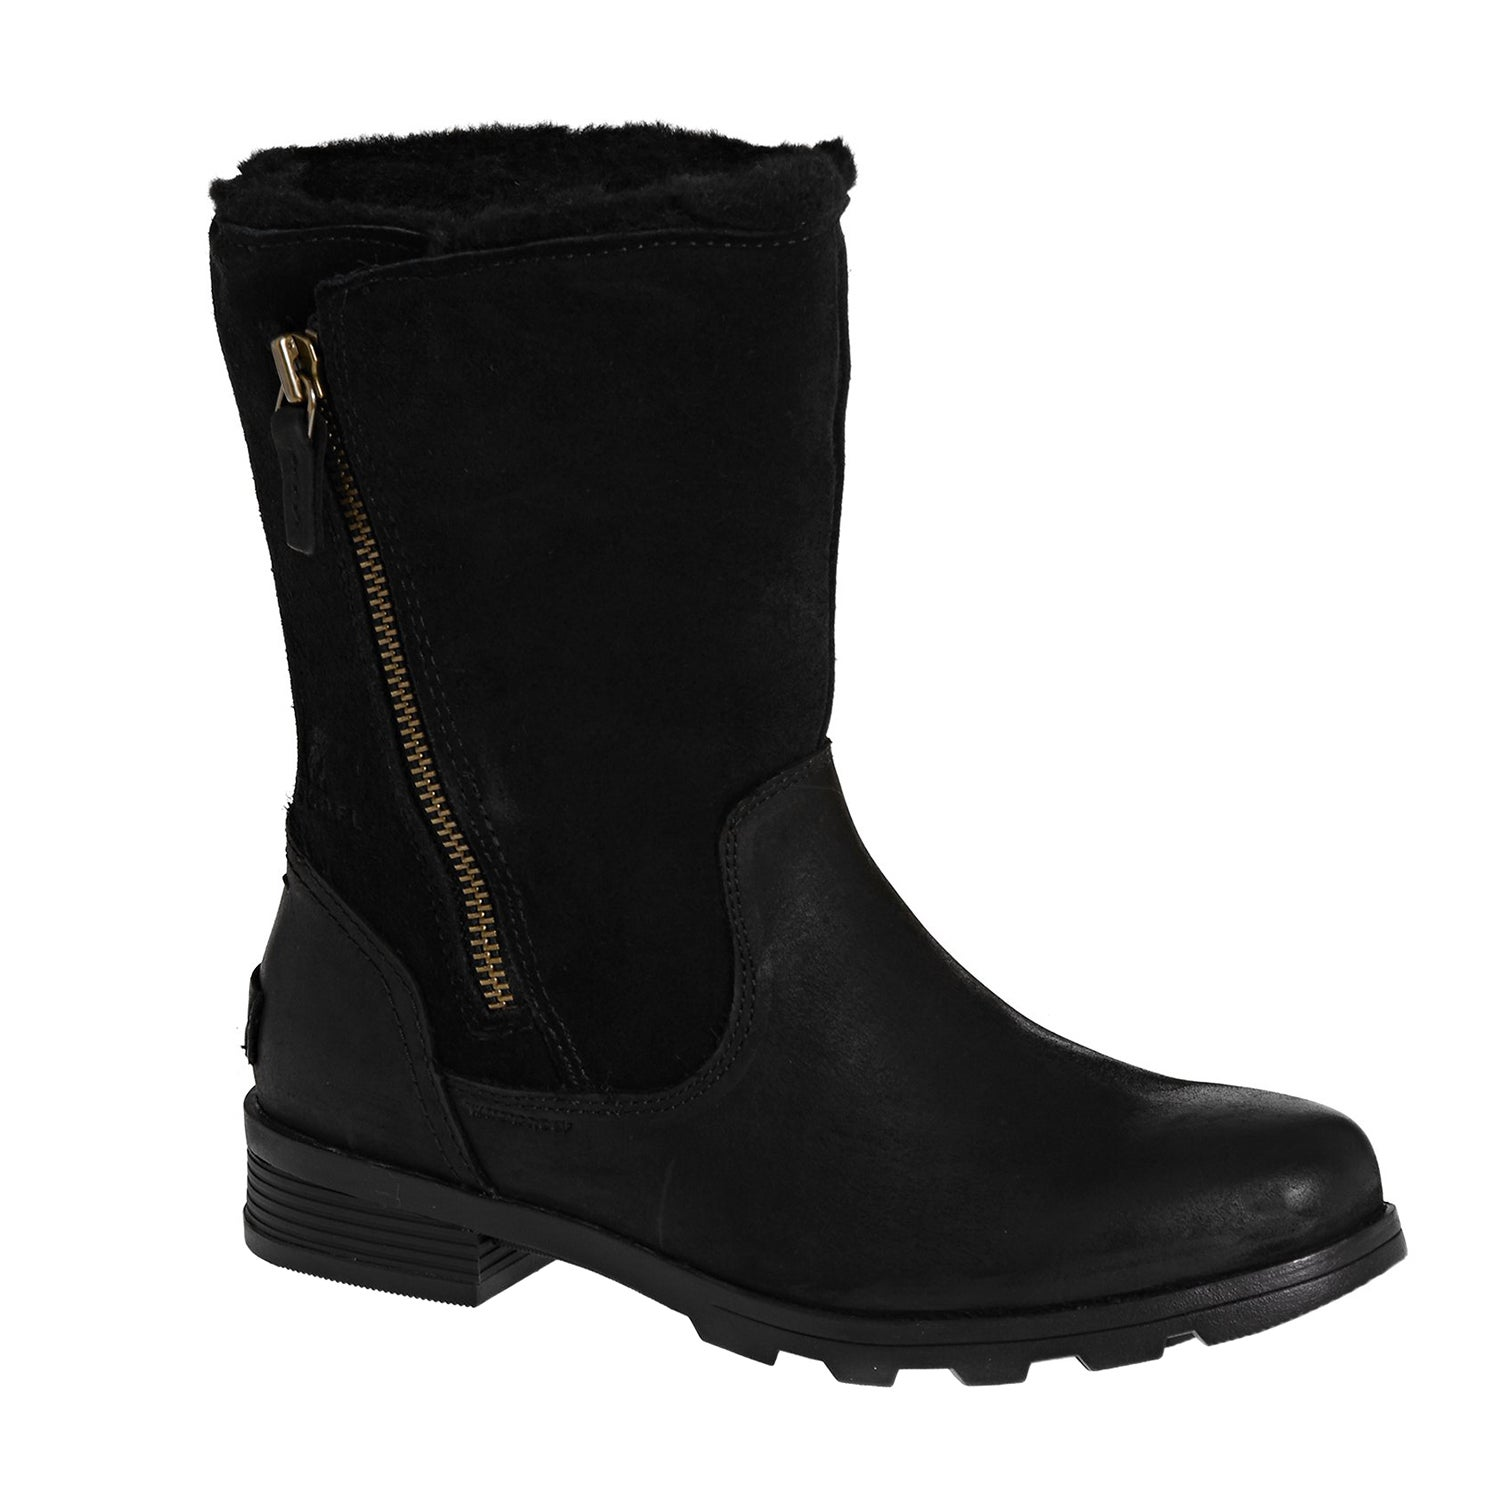 Sorel Ladies Emelie Available Blackleaf Foldover From Boots L4Aj35R